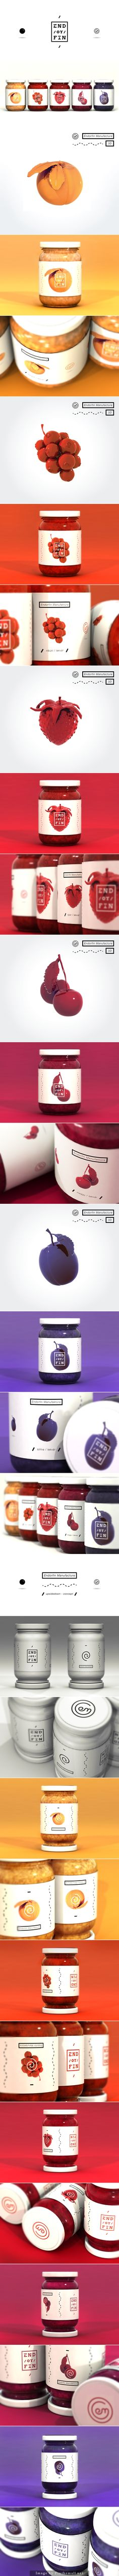 END / OR / FIN - Jam packaging on Behance by Kiss József Gergely curated by Packaging Diva PD. Been looking for the source on this great pin a long time and now I found it. Fruit Packaging, Cool Packaging, Bottle Packaging, Brand Packaging, Design Packaging, Product Packaging, Bottle Labels, Graphic Design Branding, Label Design